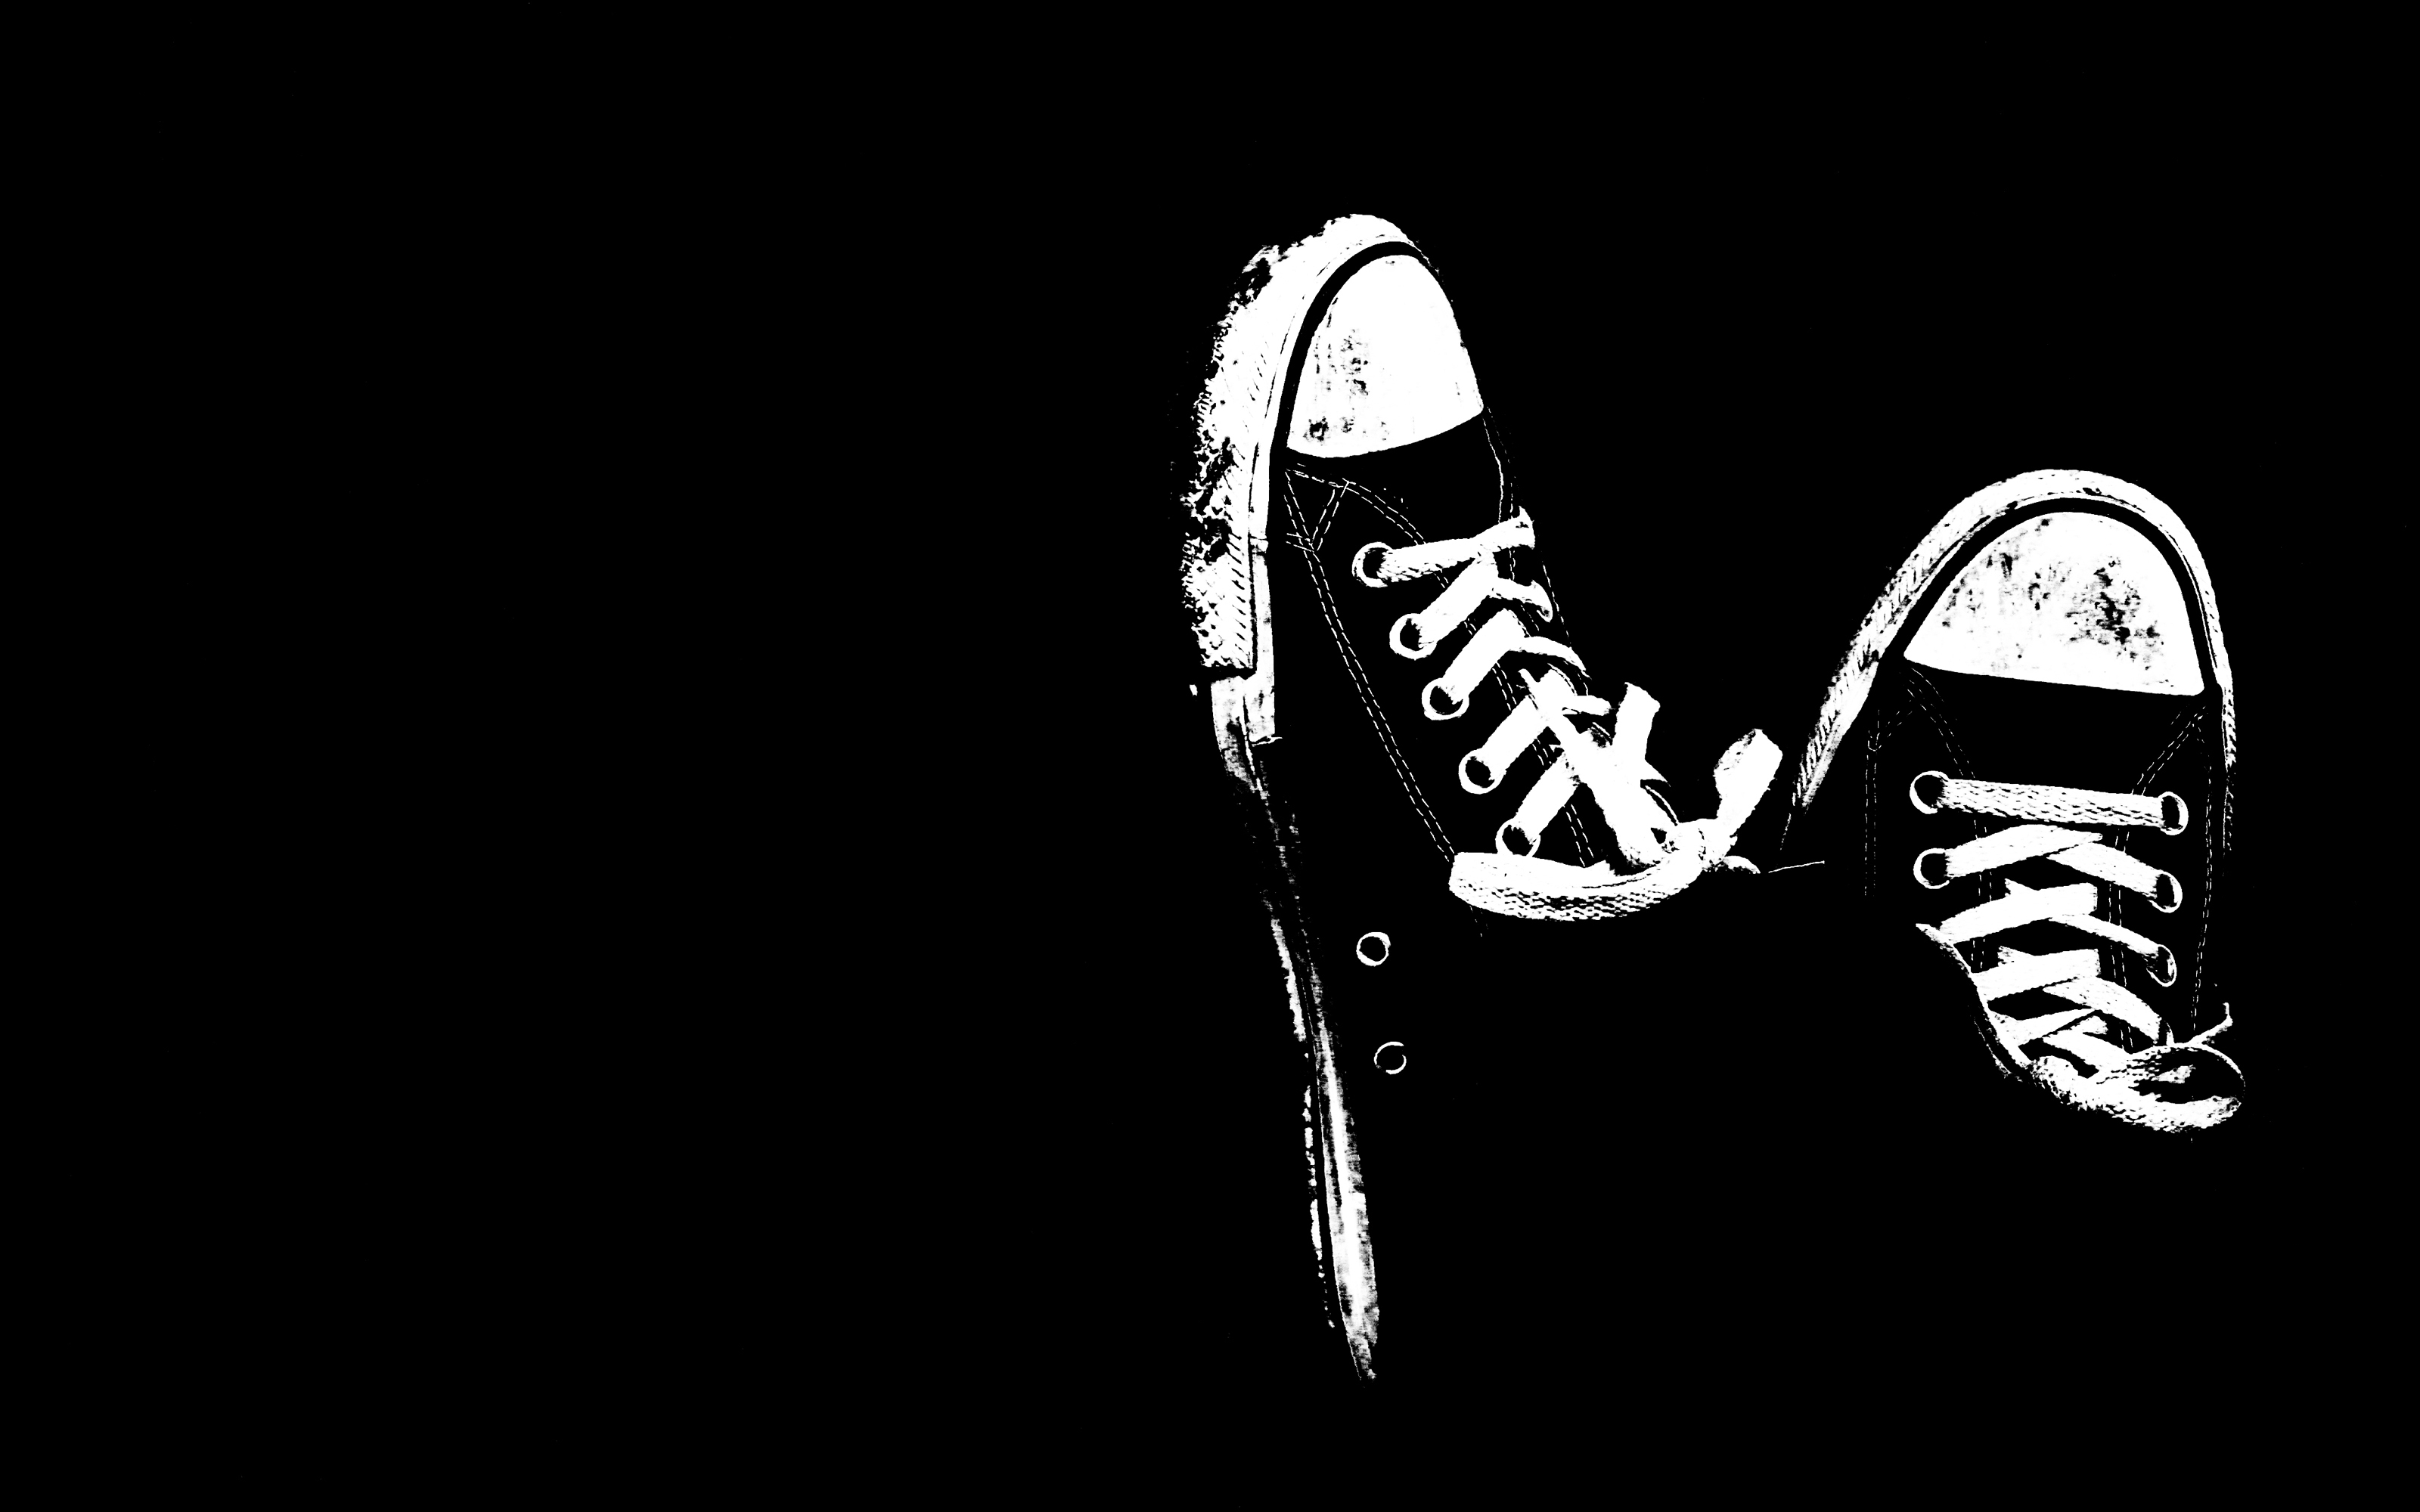 Cool Shoes Wallpaper Black And White 12870 Wallpaper  WallDiskPaper